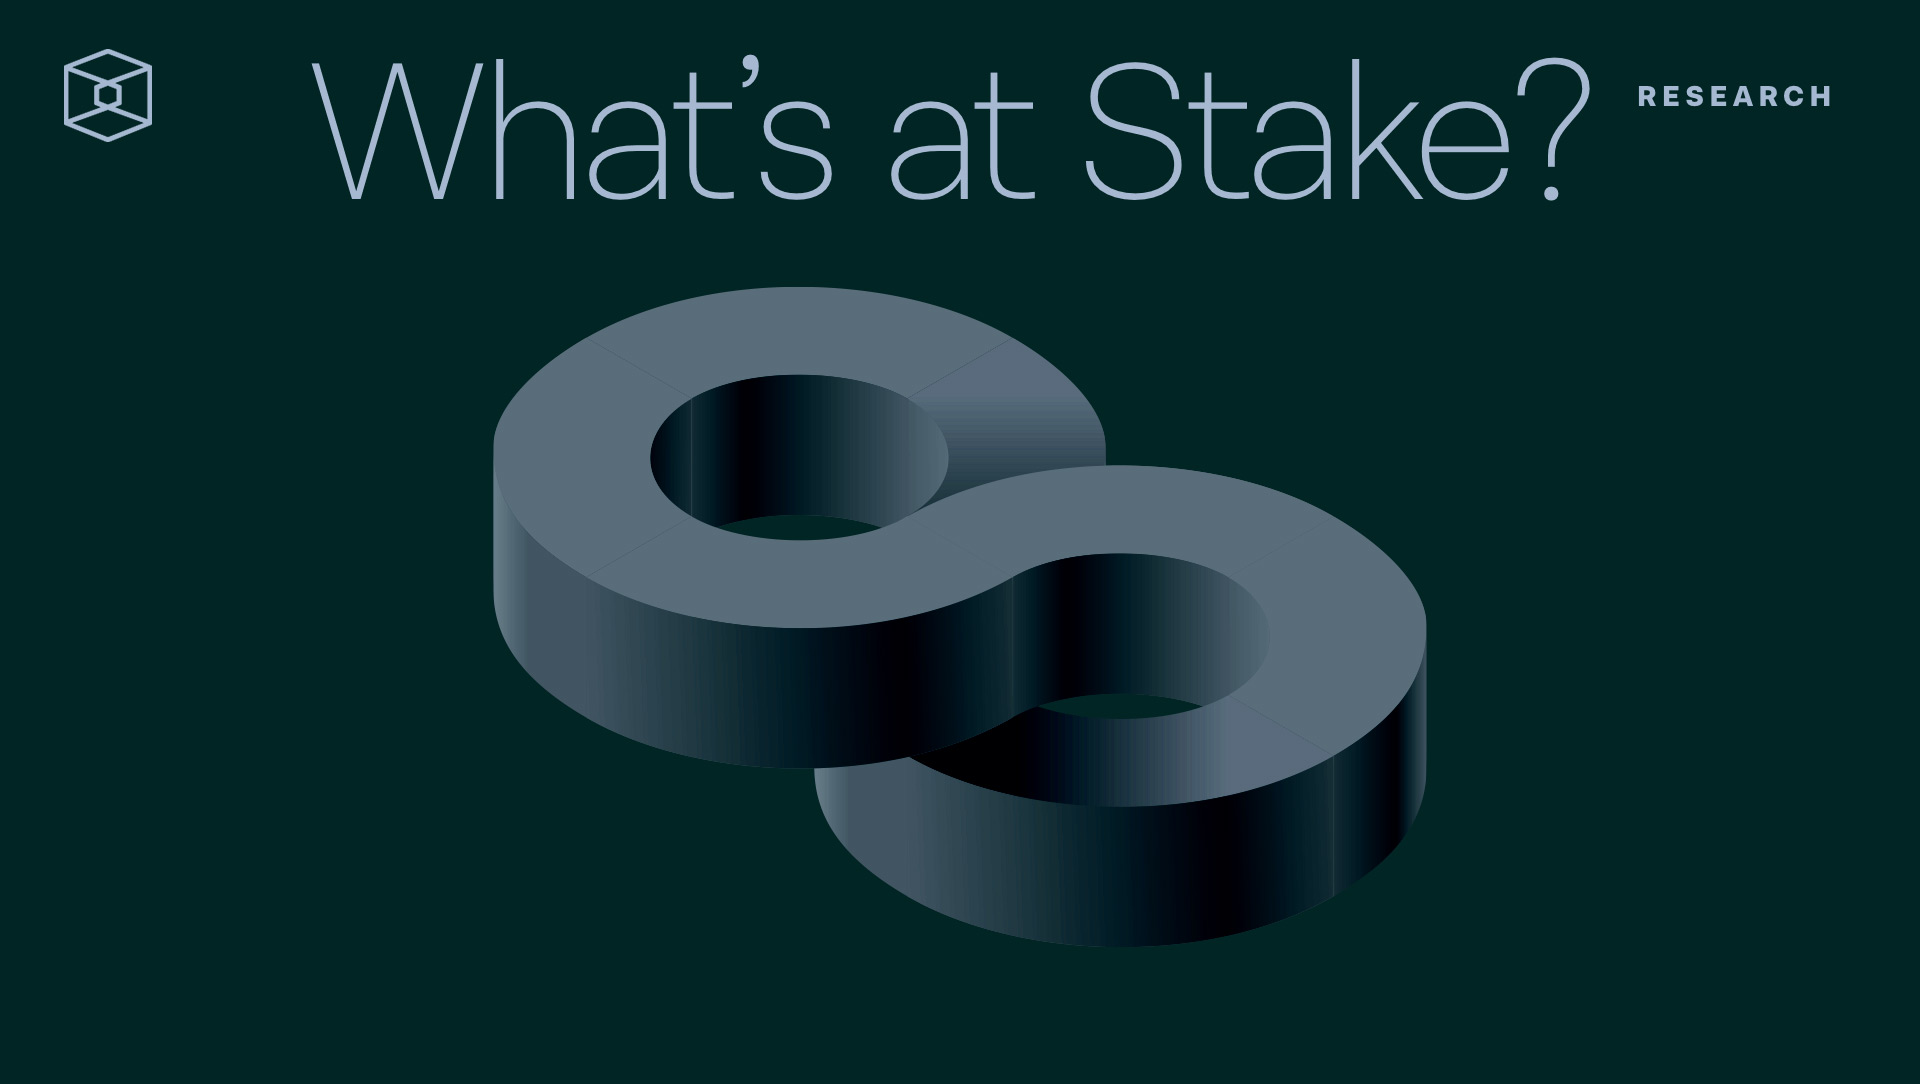 Avalanche, the latest staking network to launch, already has more than $1 billion staked